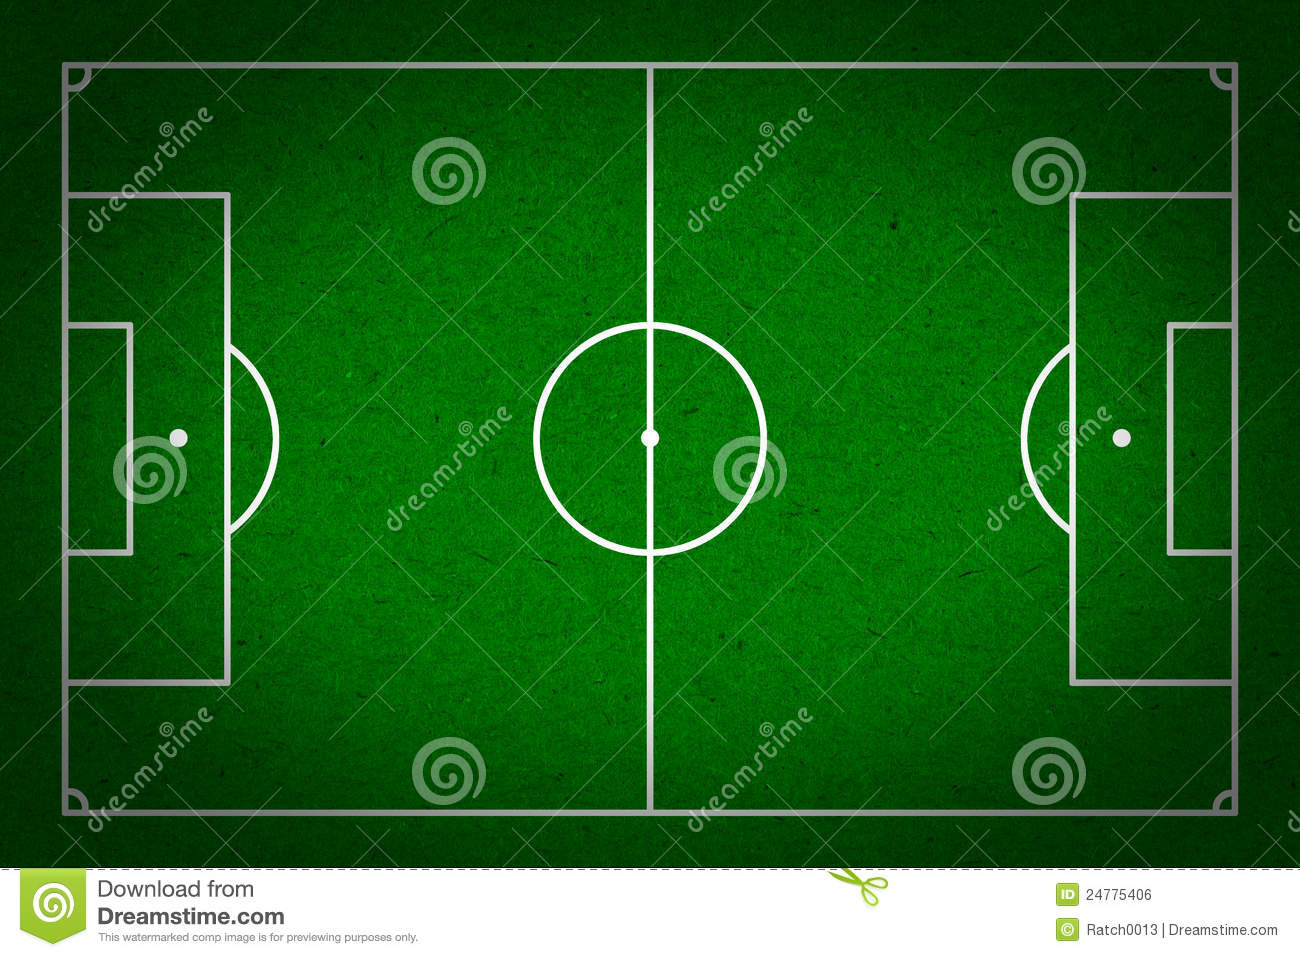 soccer - football field with lines on grunge paper royalty free stock image